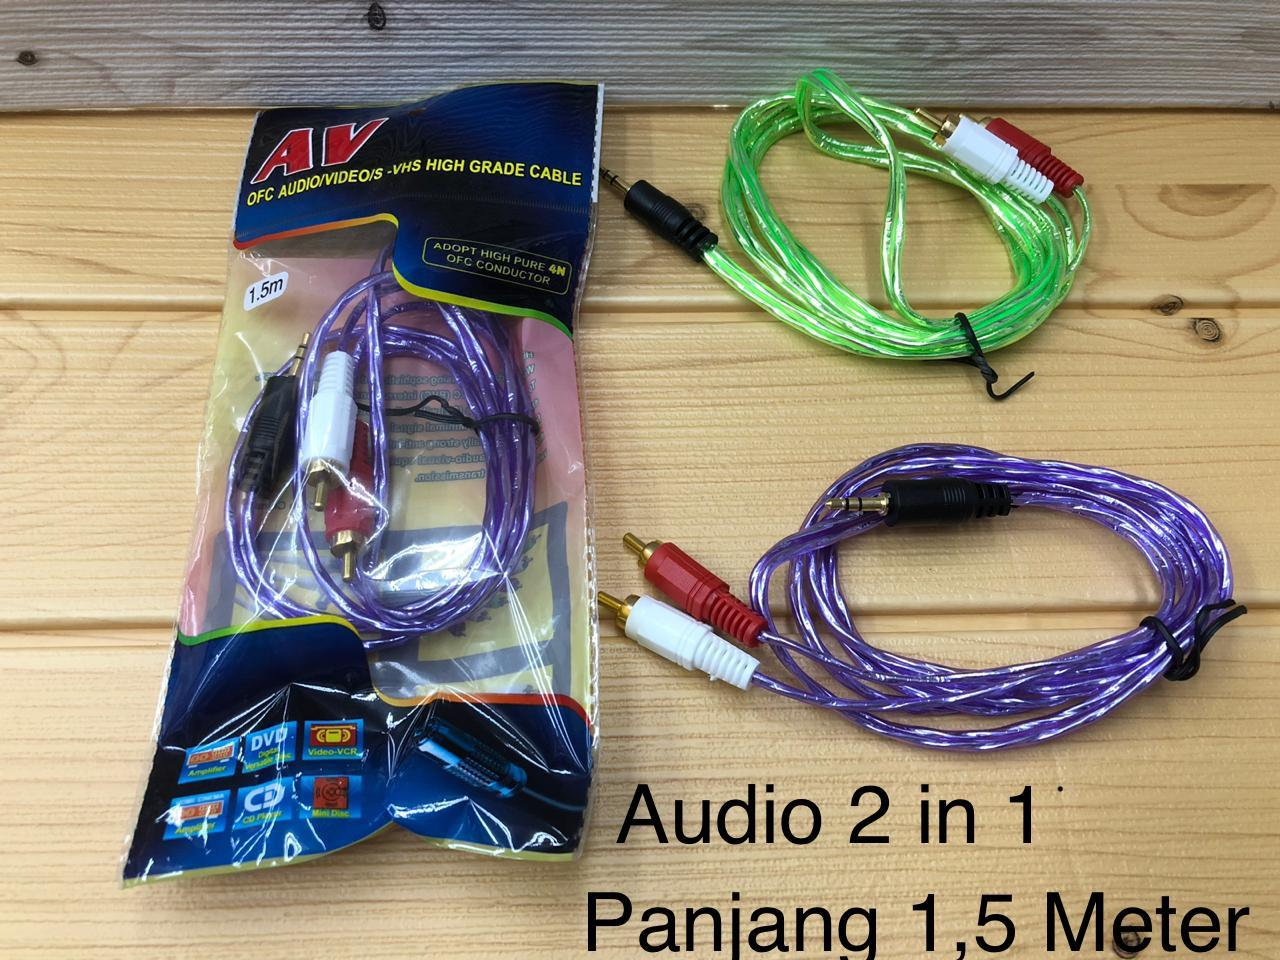 Kabel Audio 2 in 1 Panjang 1,5 Meter